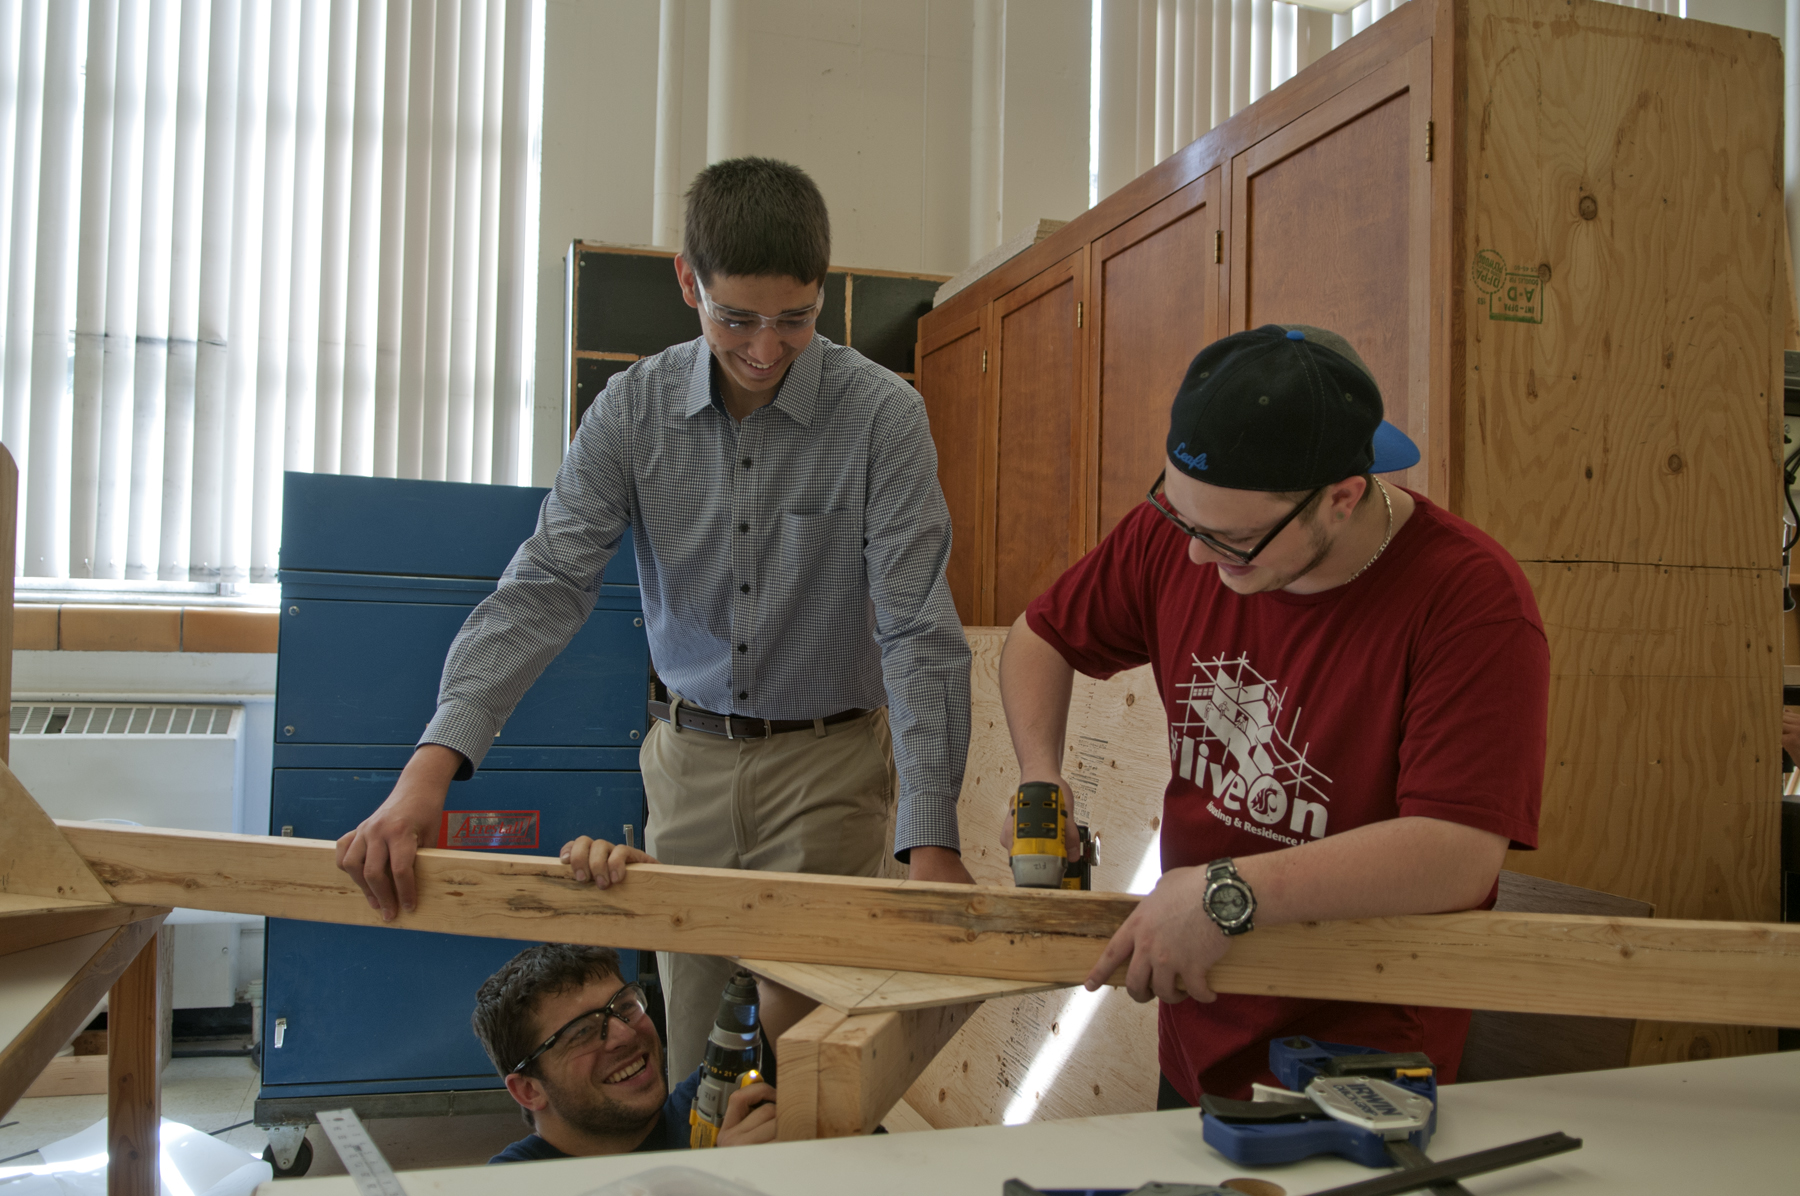 Three students working together to build a large wood frame.